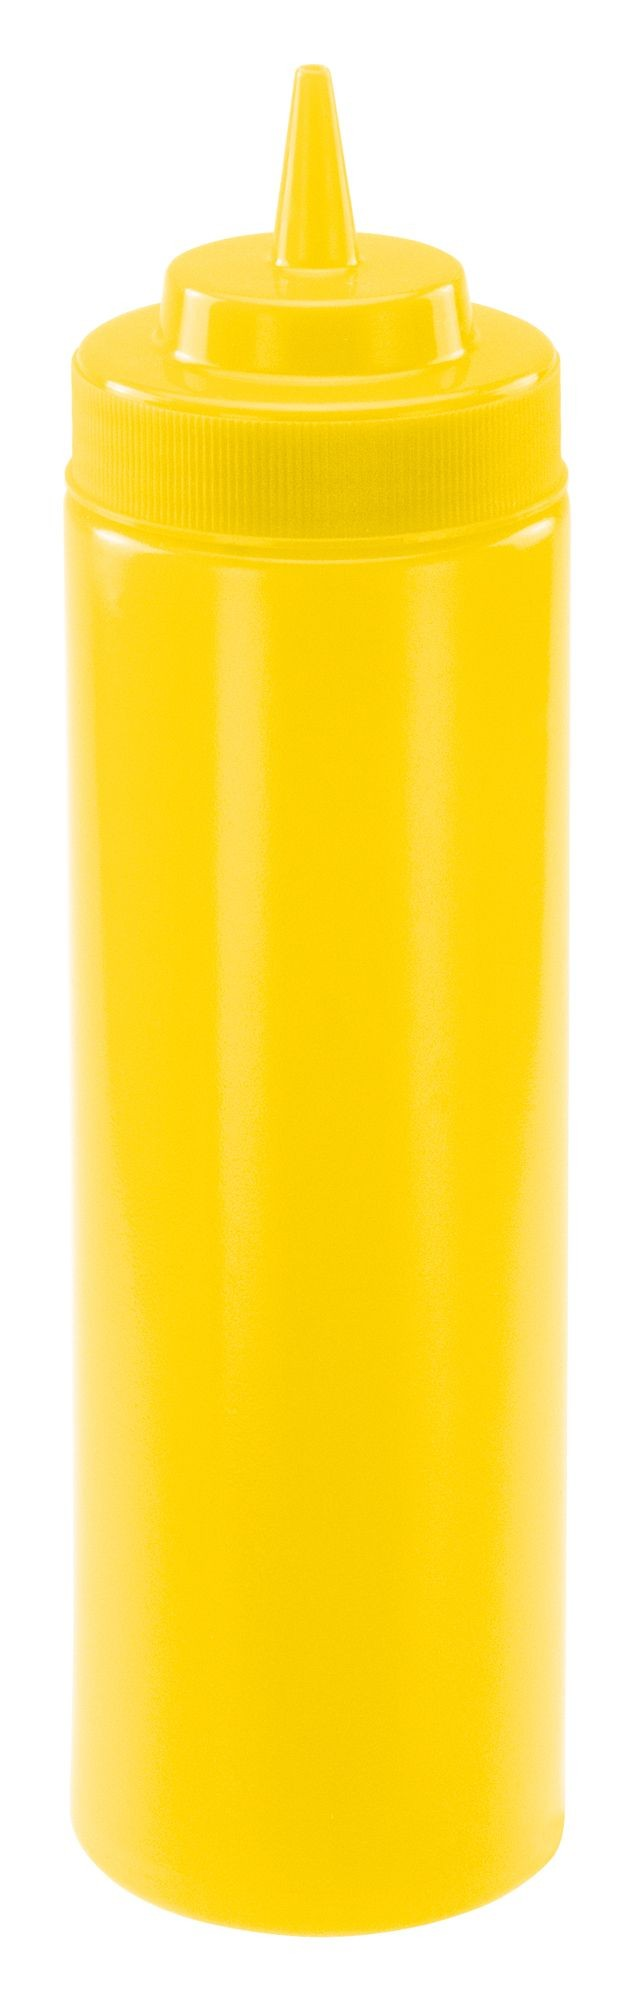 Winco PSW-24Y Yellow Plastic 24 oz. Wide-Mouth Squeeze Bottle